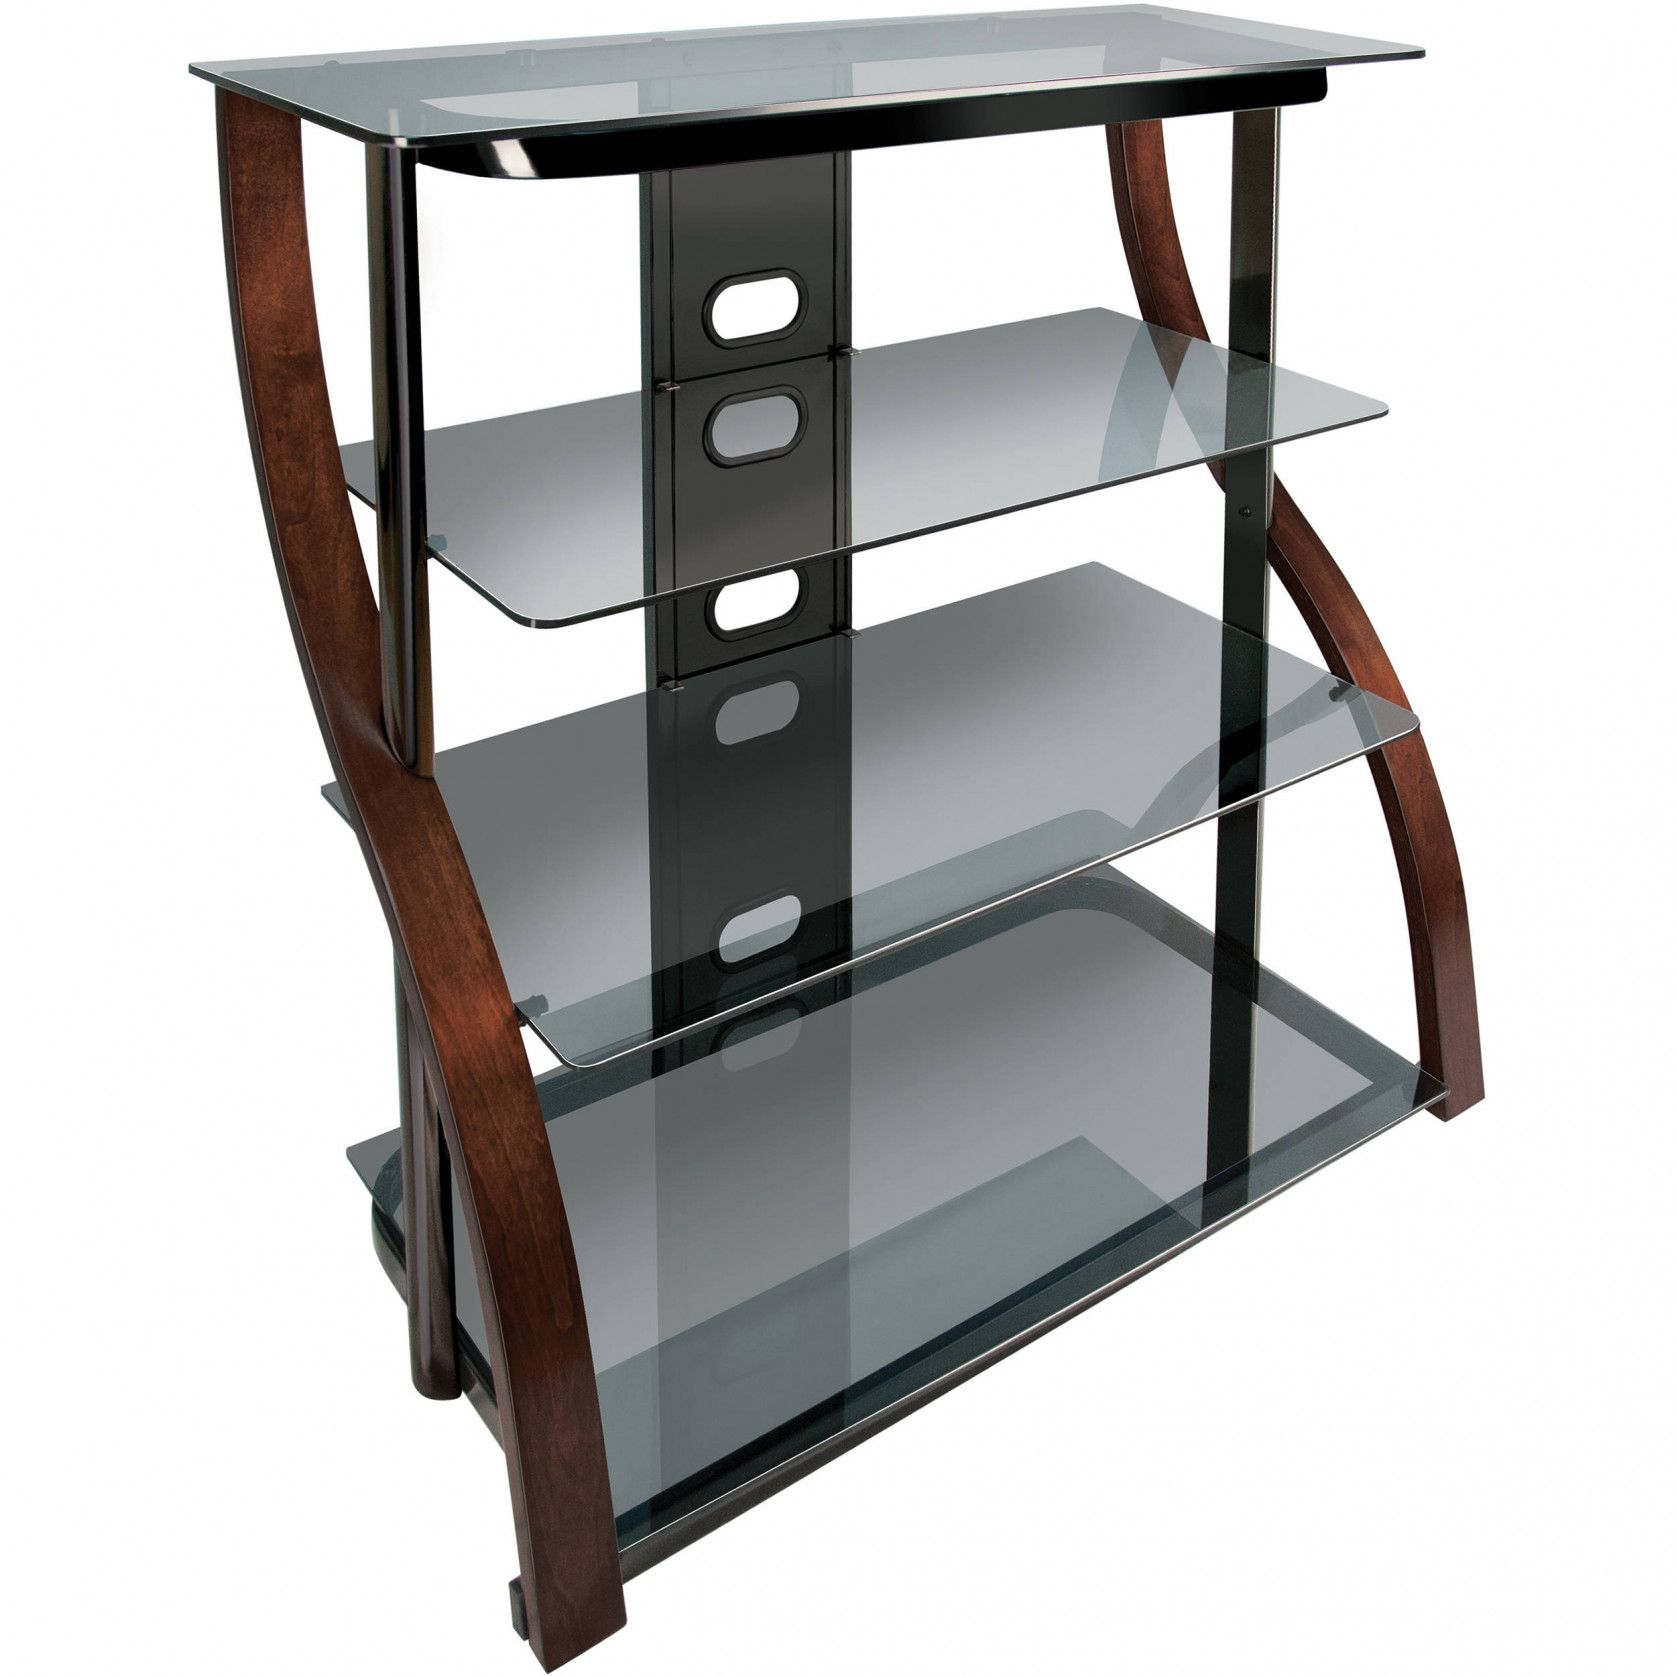 99 Audio Video Racks For Enclosed Cabinets Kitchen Shelf Display Ideas Check More At